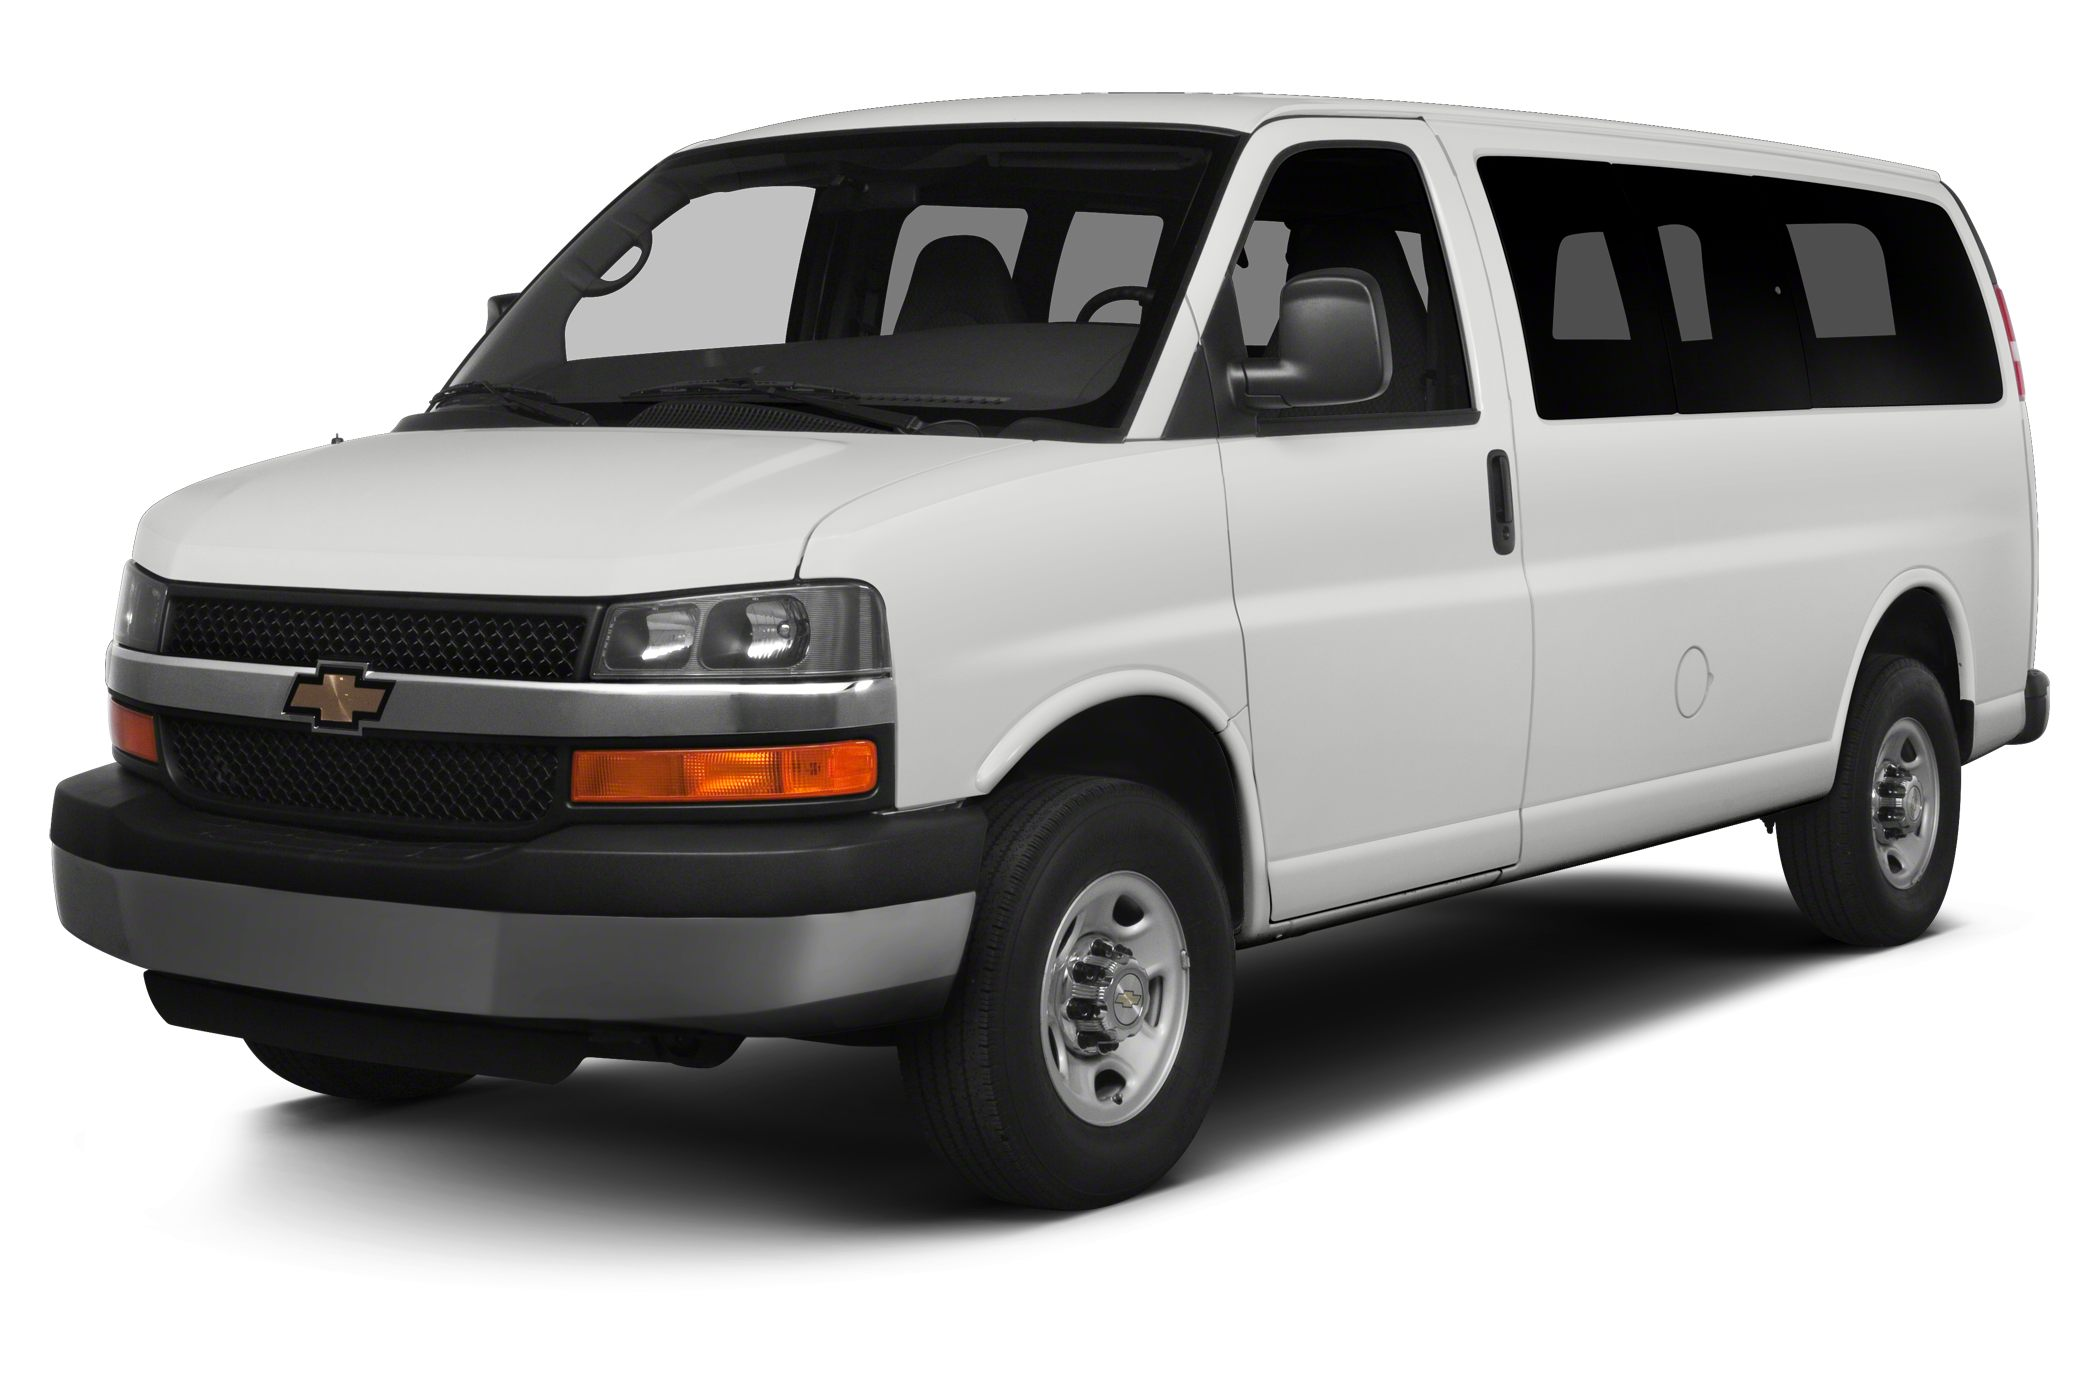 2014ChevroletExpress 1500